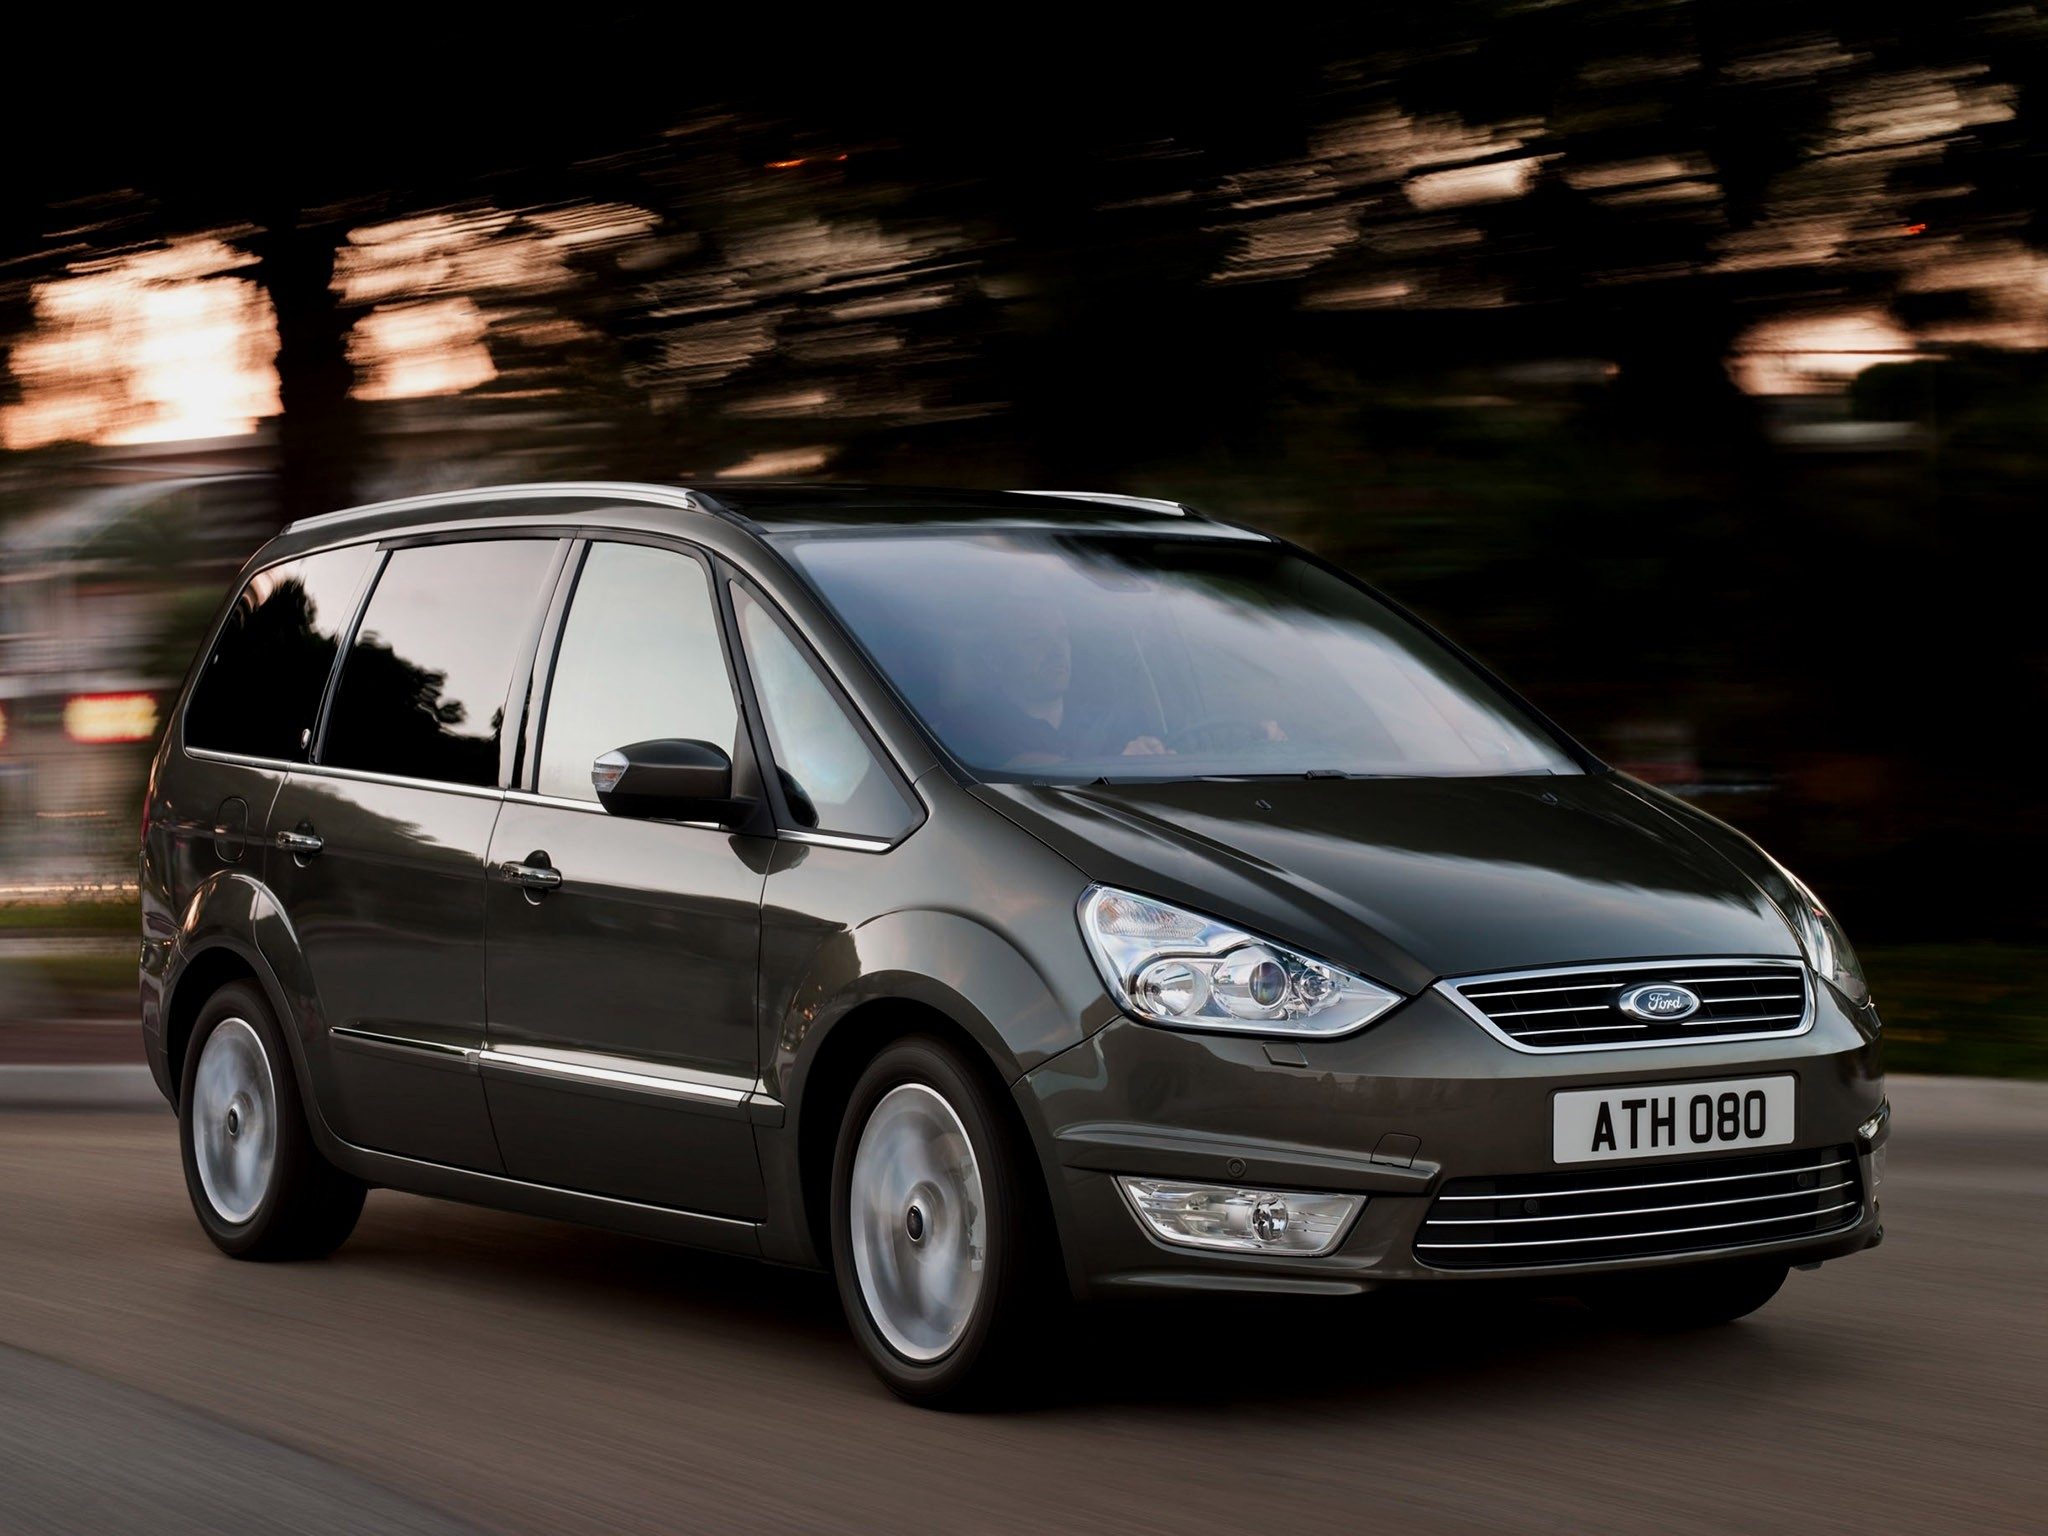 Ford Galaxy Specs 2006 2007 2008 2009 2010 2011 2012 2013 2014 2015 2016 Autoevolution